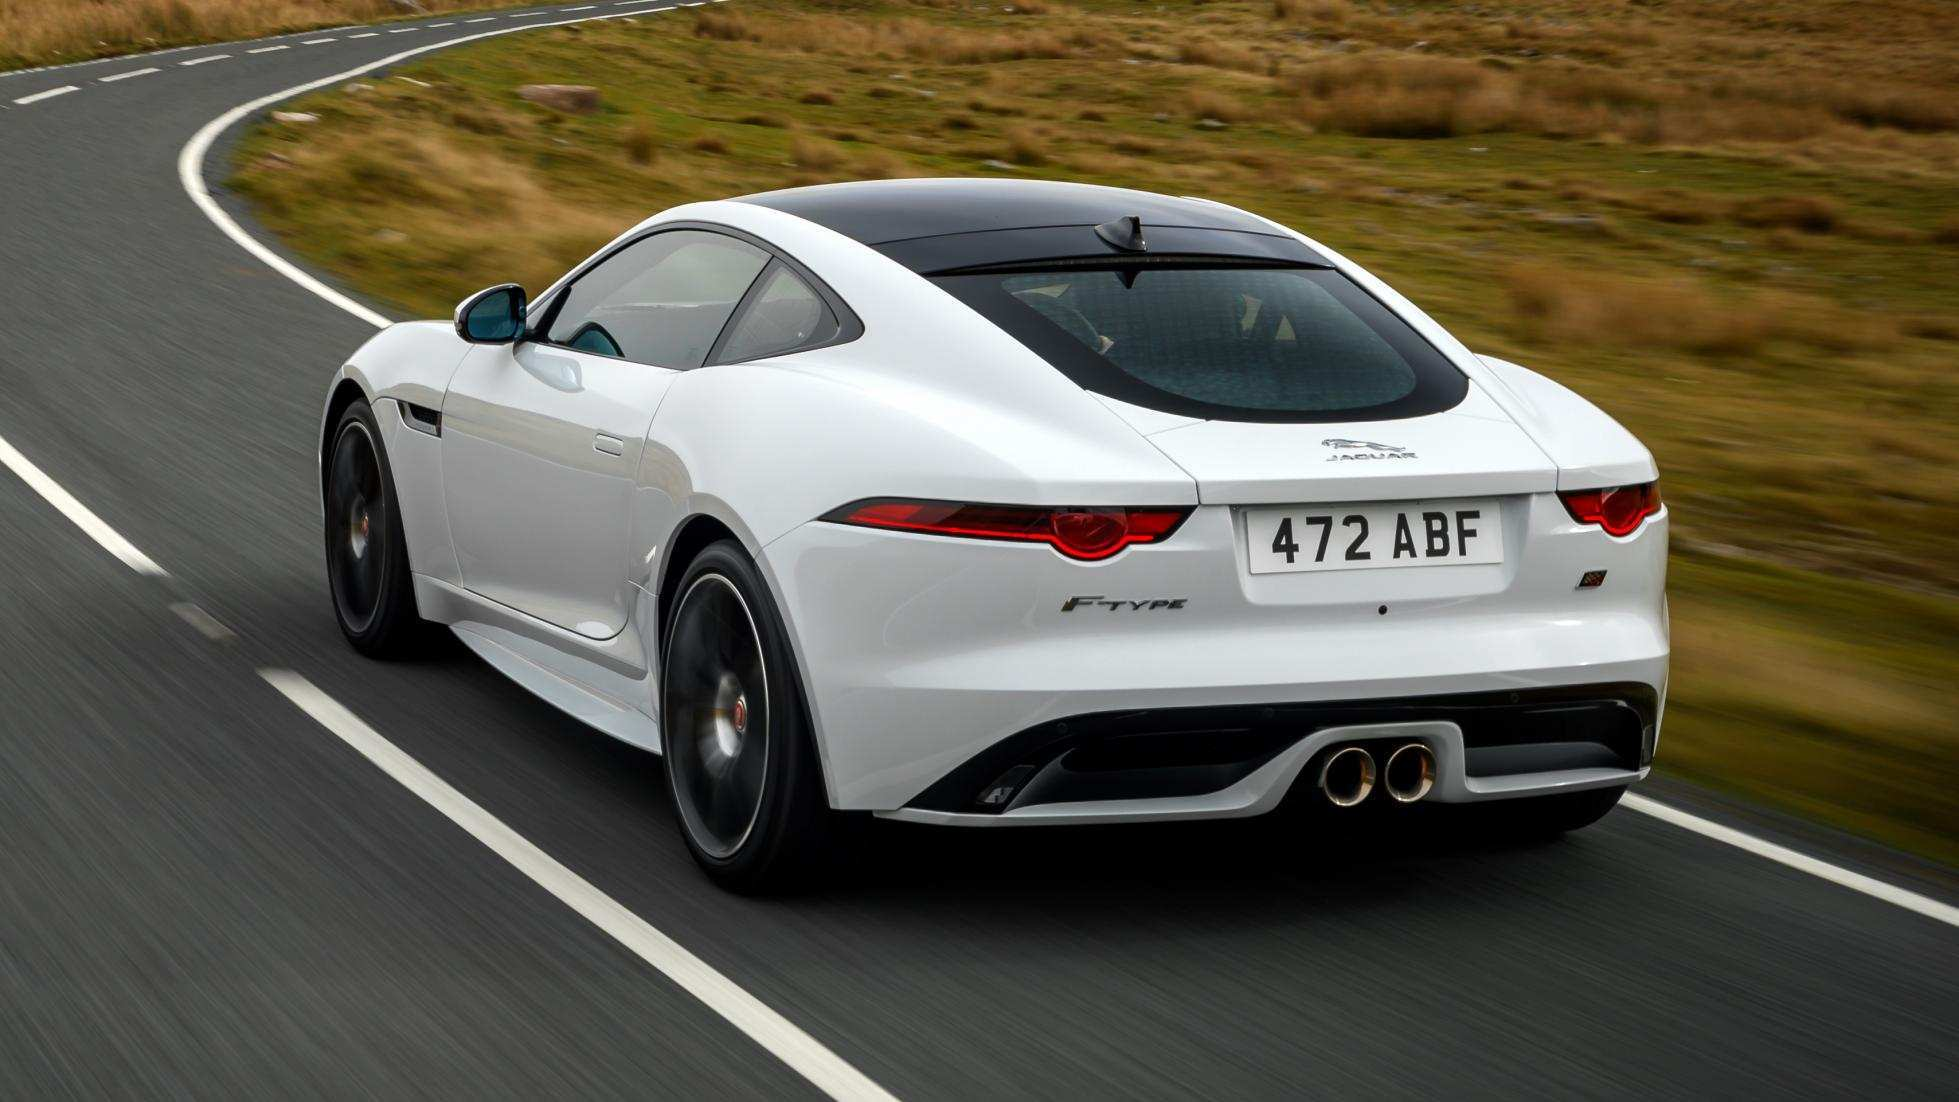 84 Concept of 2020 Jaguar F Type New Concept New Concept by 2020 Jaguar F Type New Concept